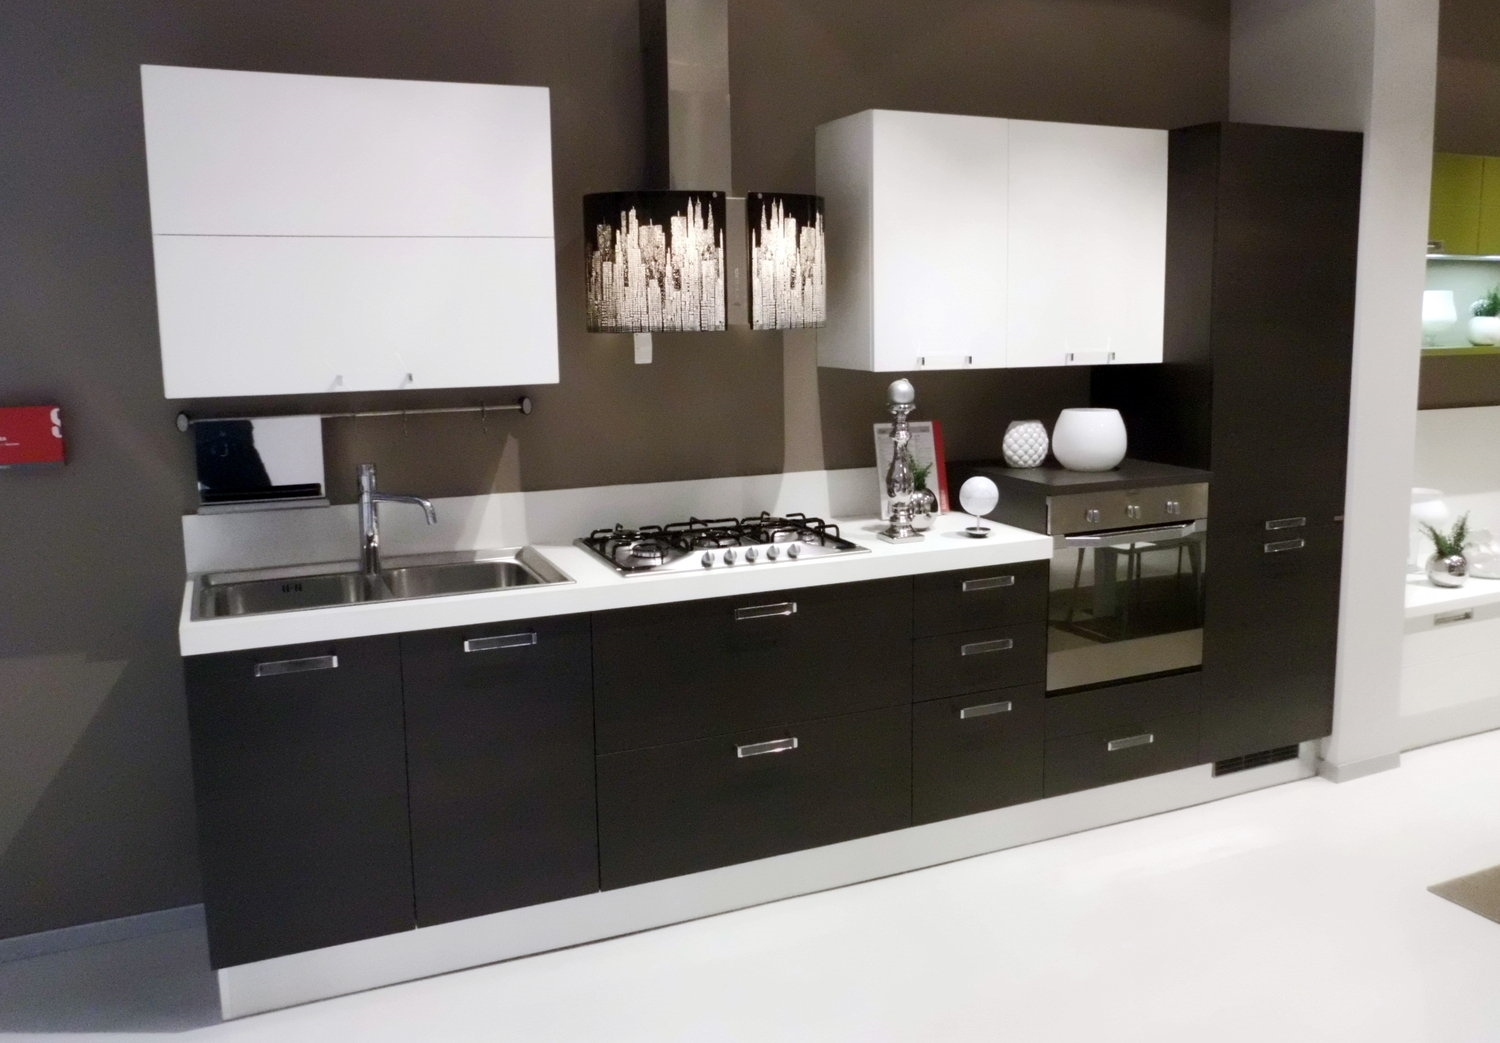 Aurora Cucine Design Cucine Country Chic Cucine In Muratura Ask Home  #665E42 1500 1043 Cucine Shabby Chic Scavolini